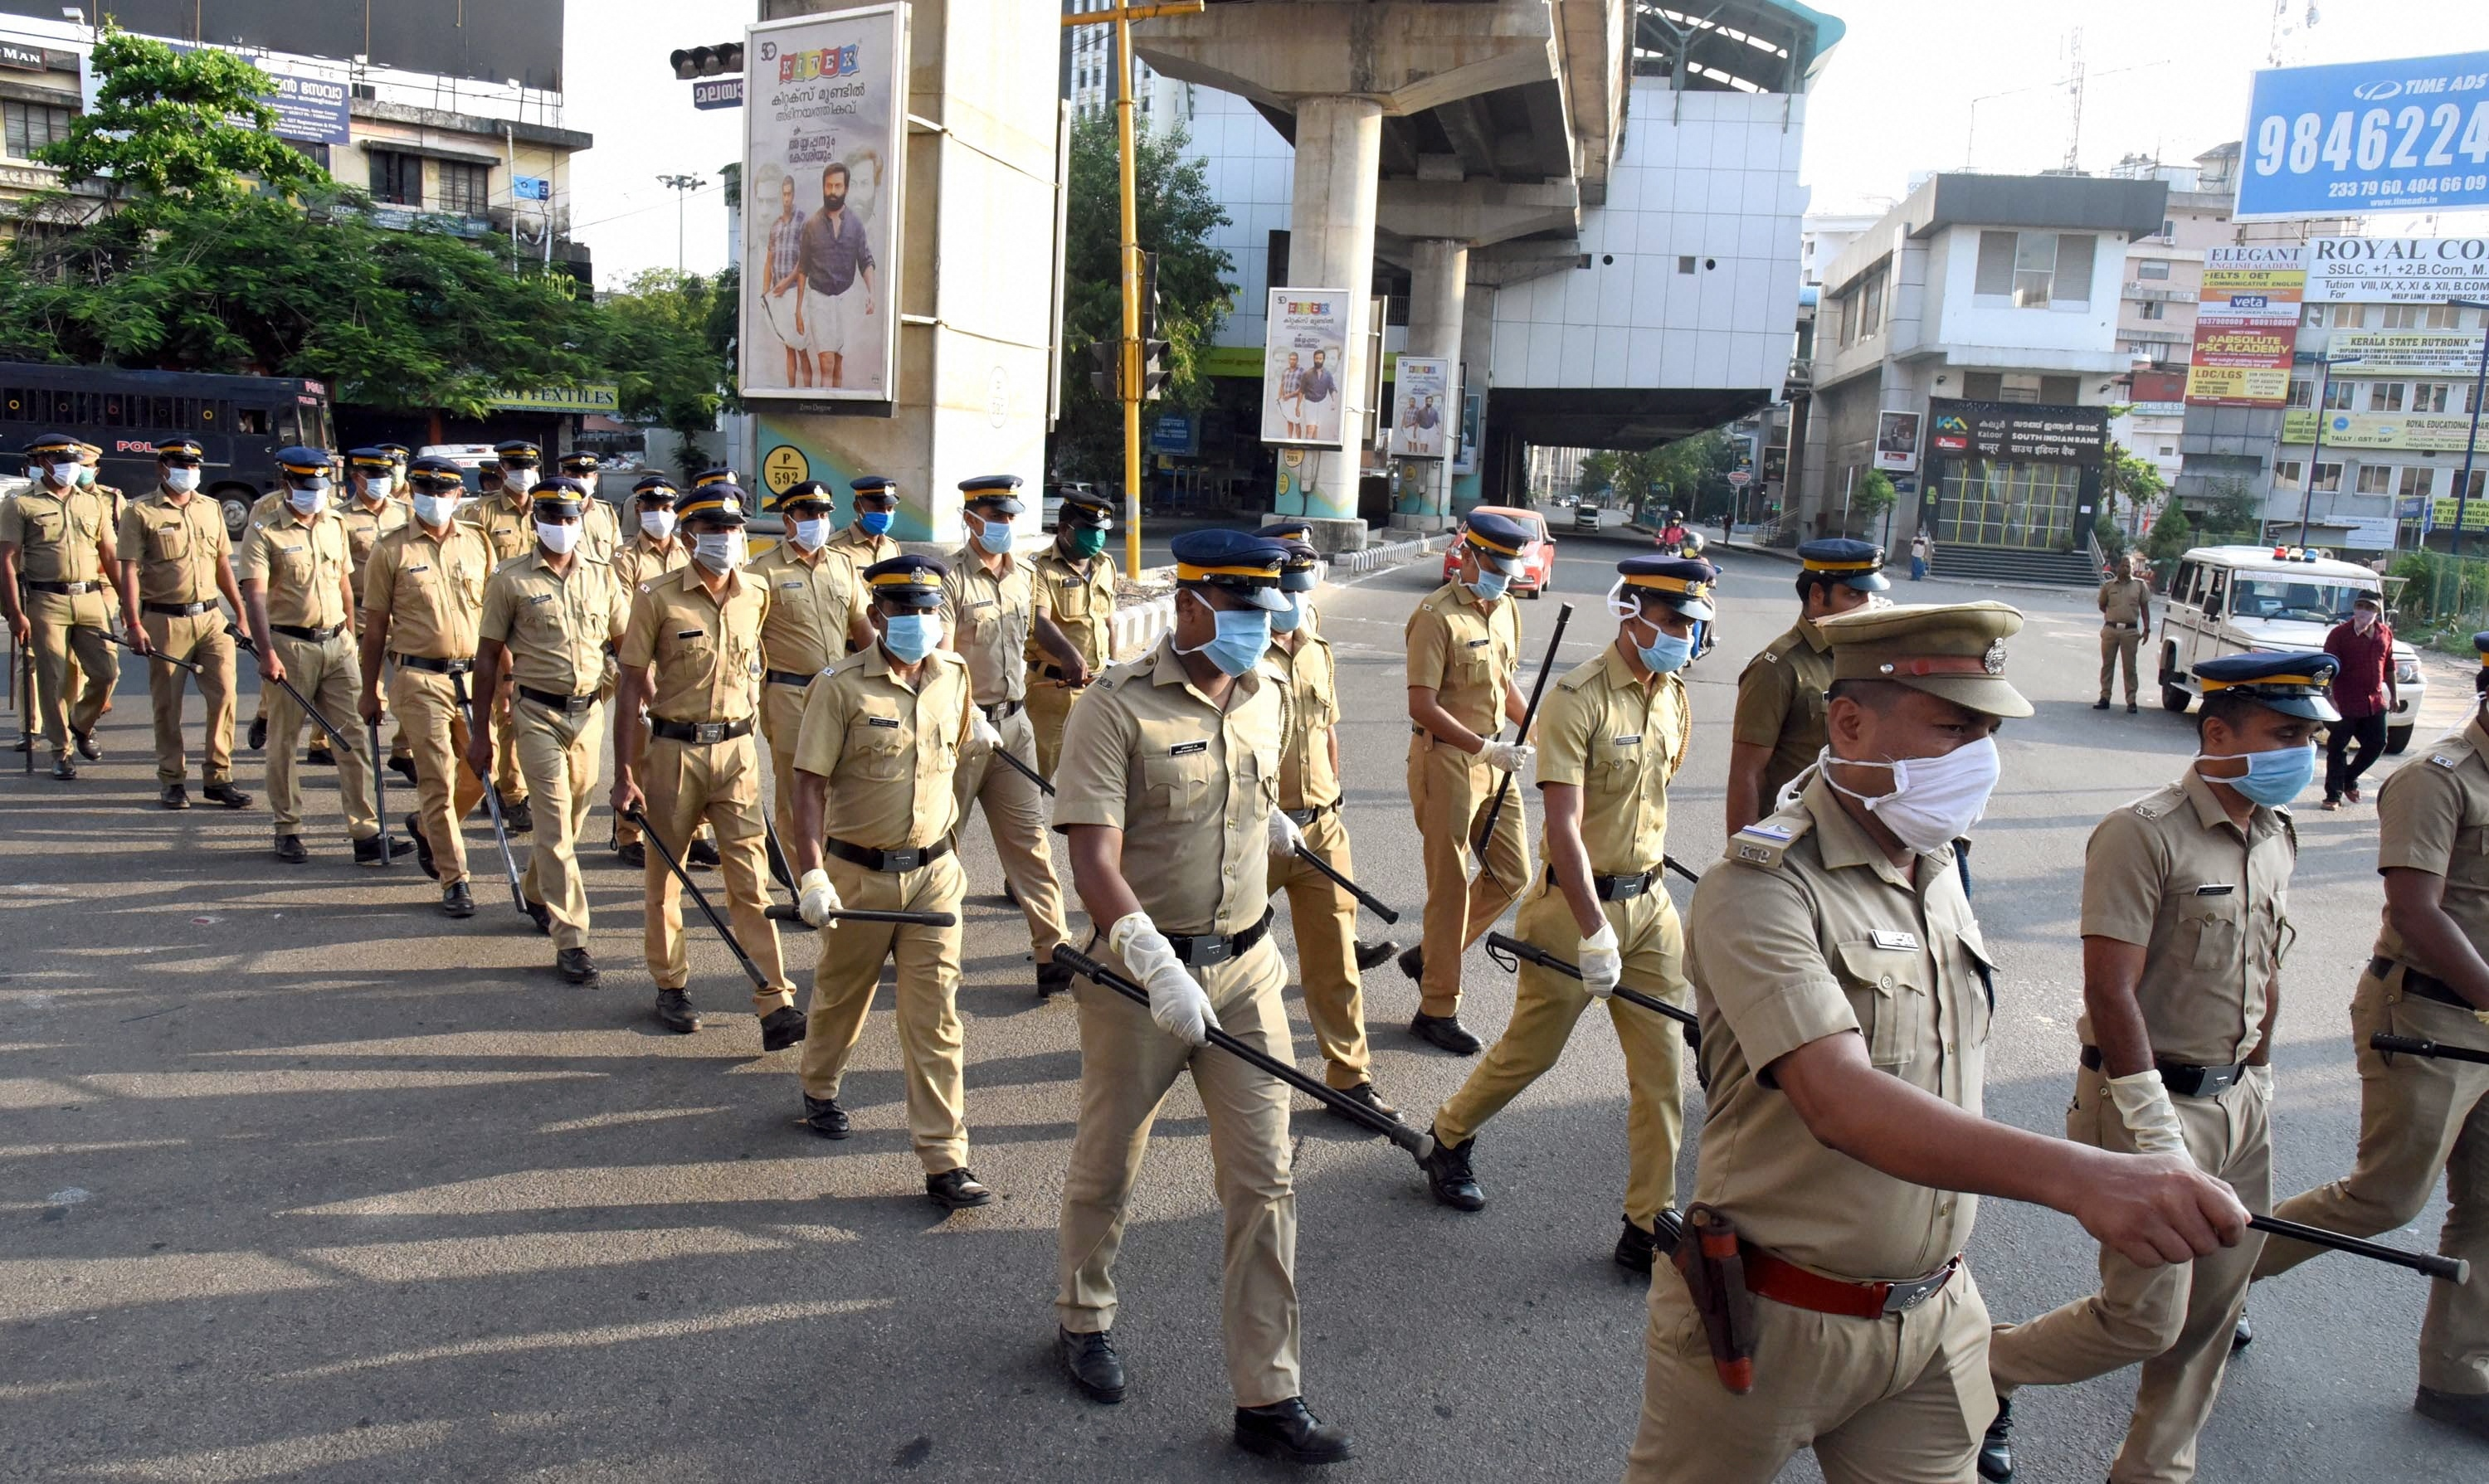 Police personnel conduct a march to enforce the Covid-19 lockdown strictly, in Kochi, Monday, April 20, 2020.